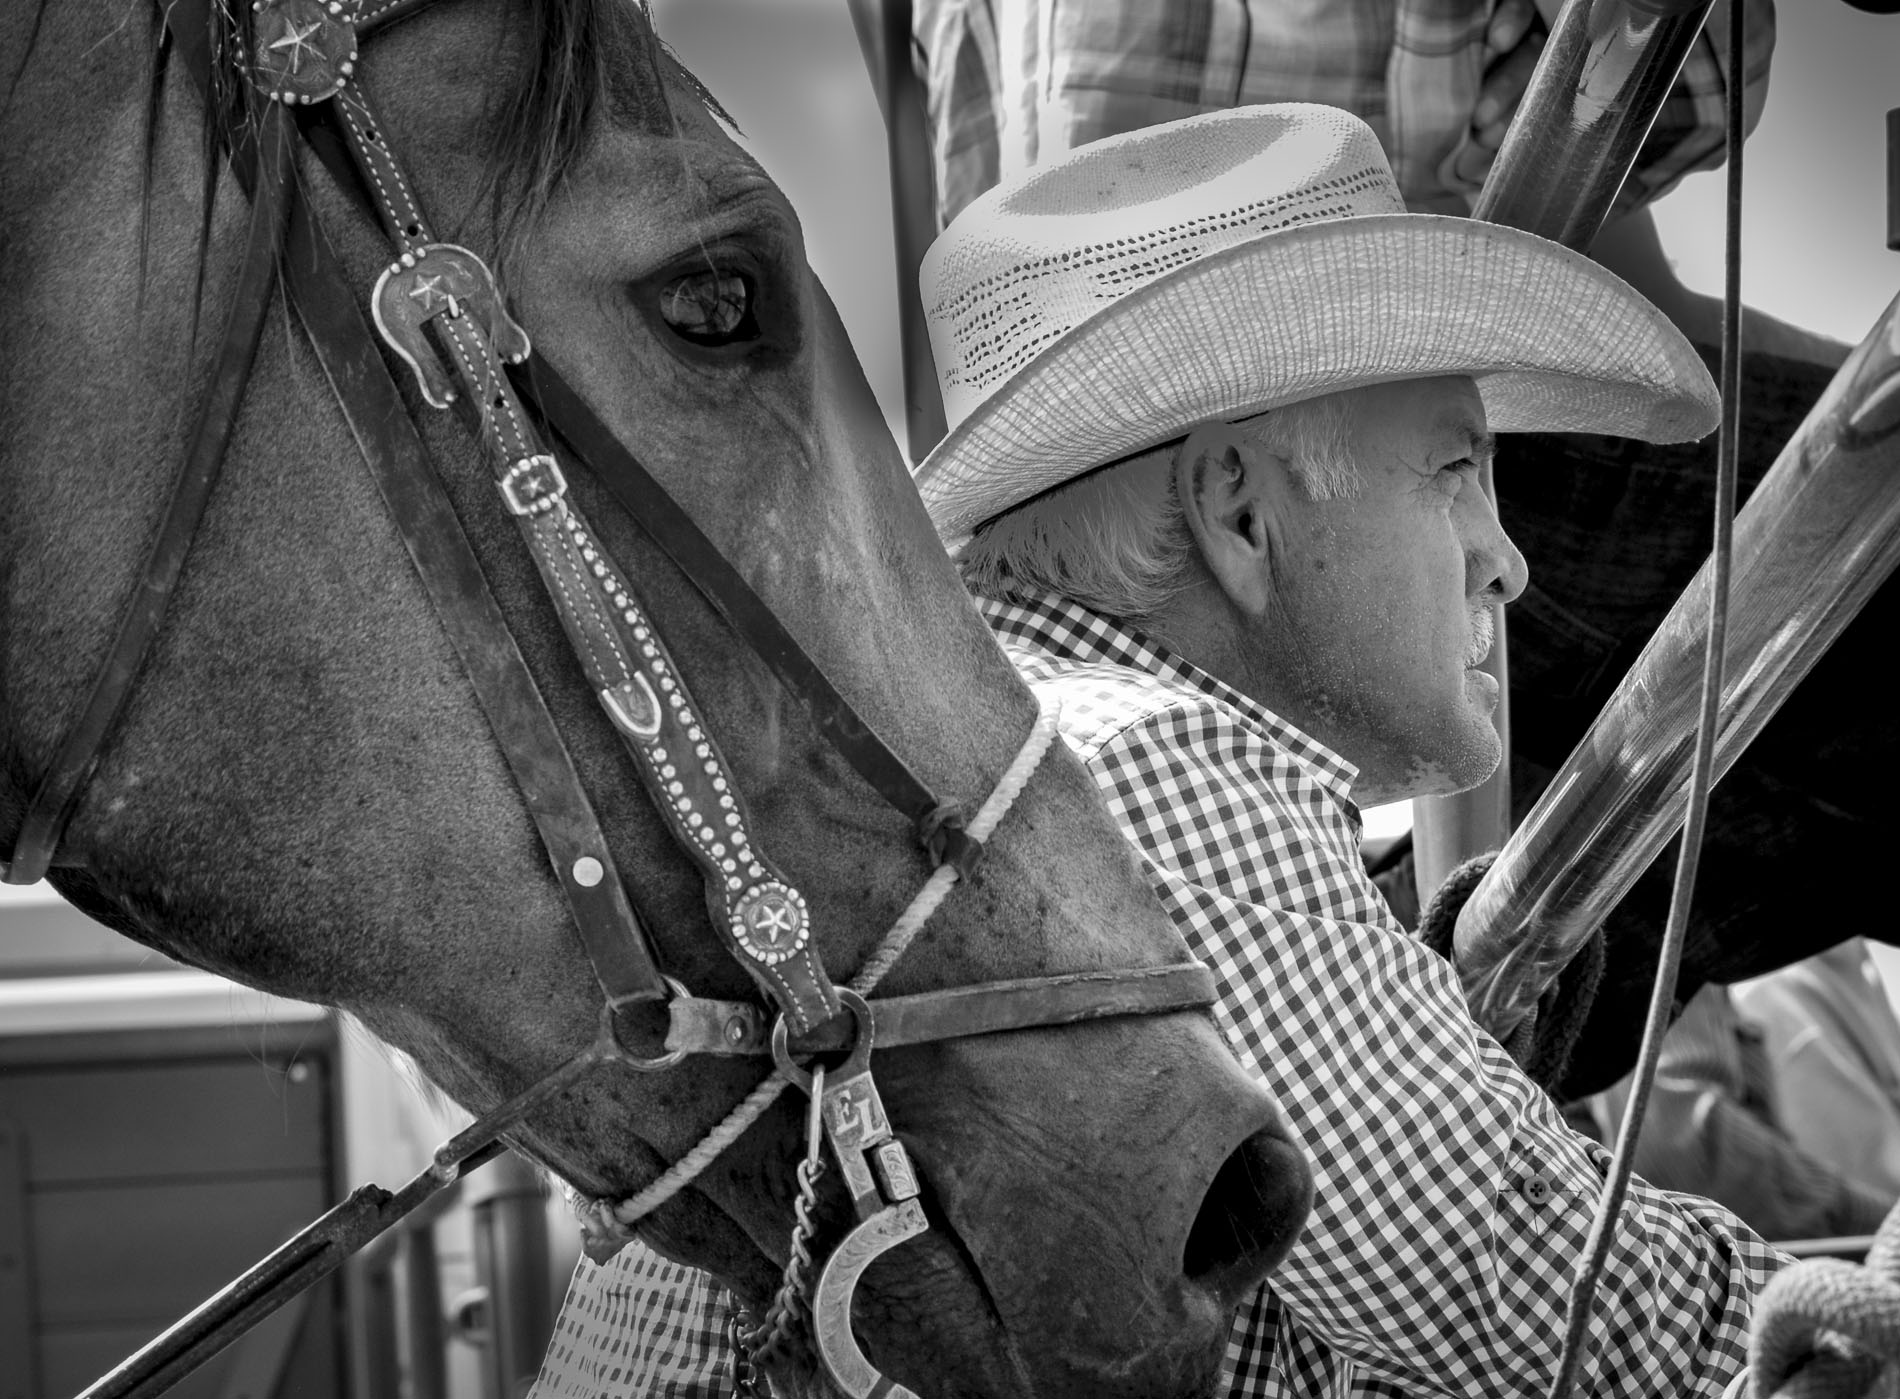 Cowboys - Horses and their partners